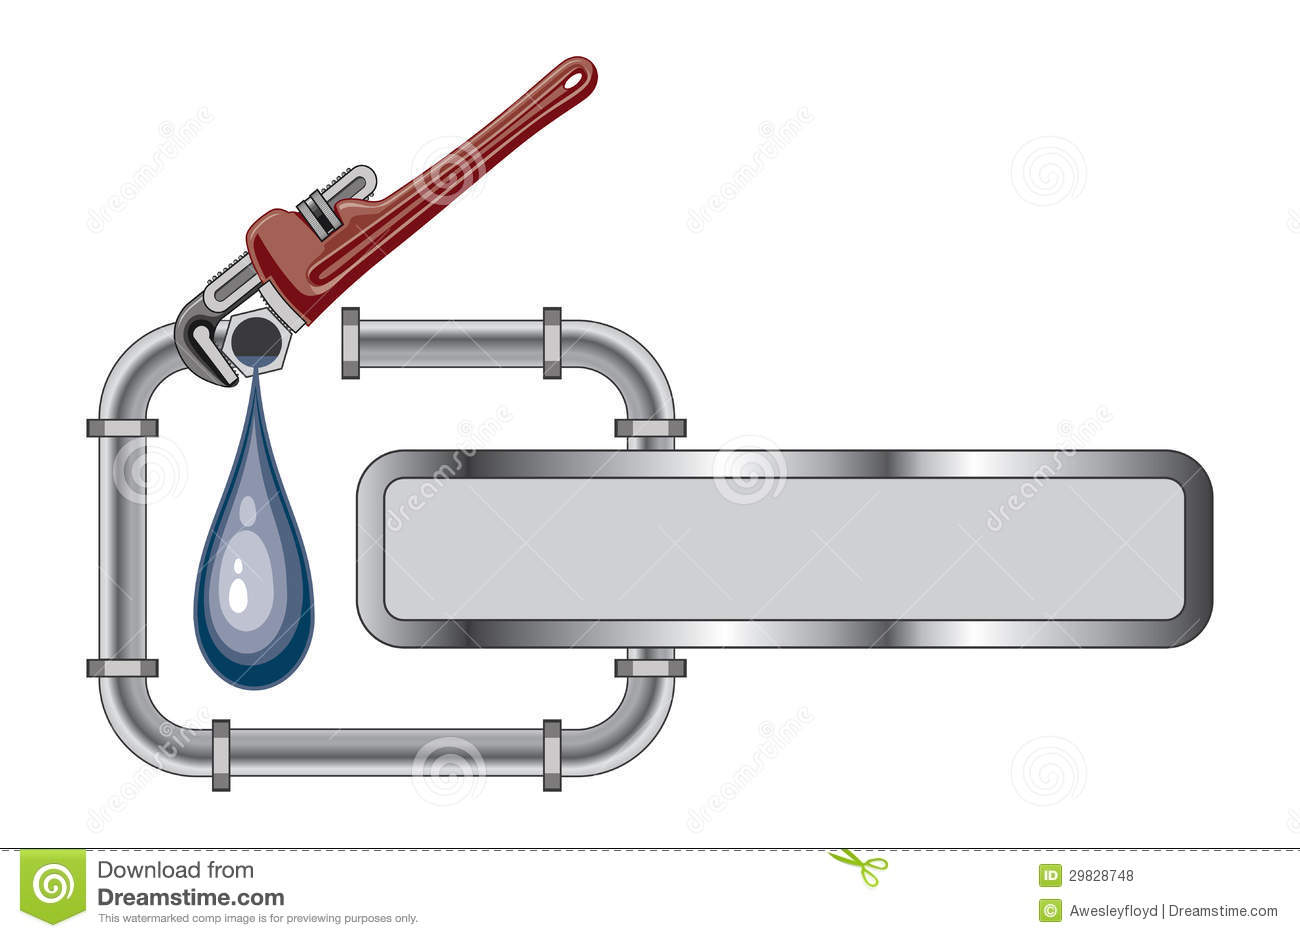 Plumbing Design With Banner Royalty Free Stock Photos Image